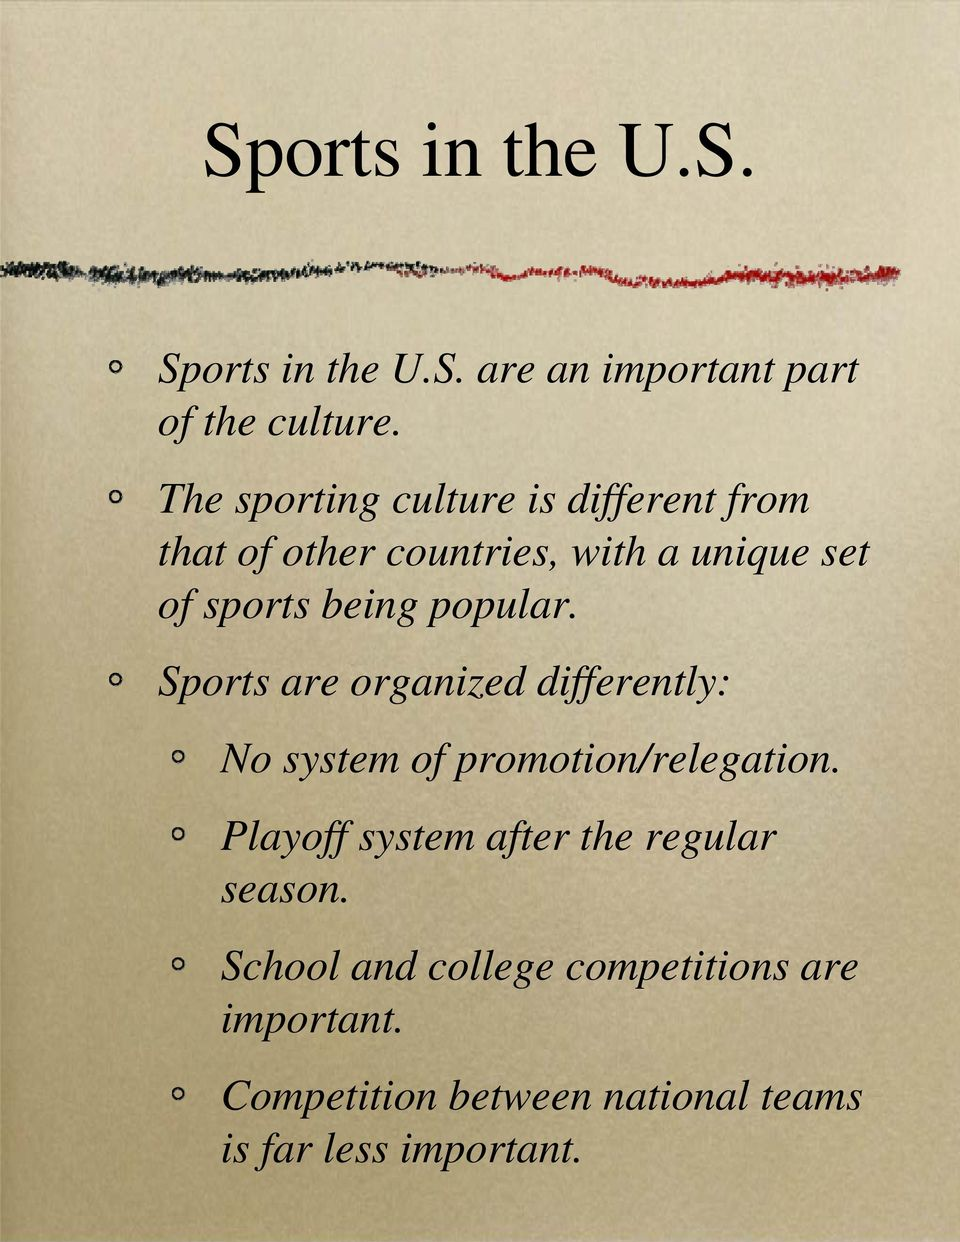 popular. Sports are organized differently: No system of promotion/relegation.